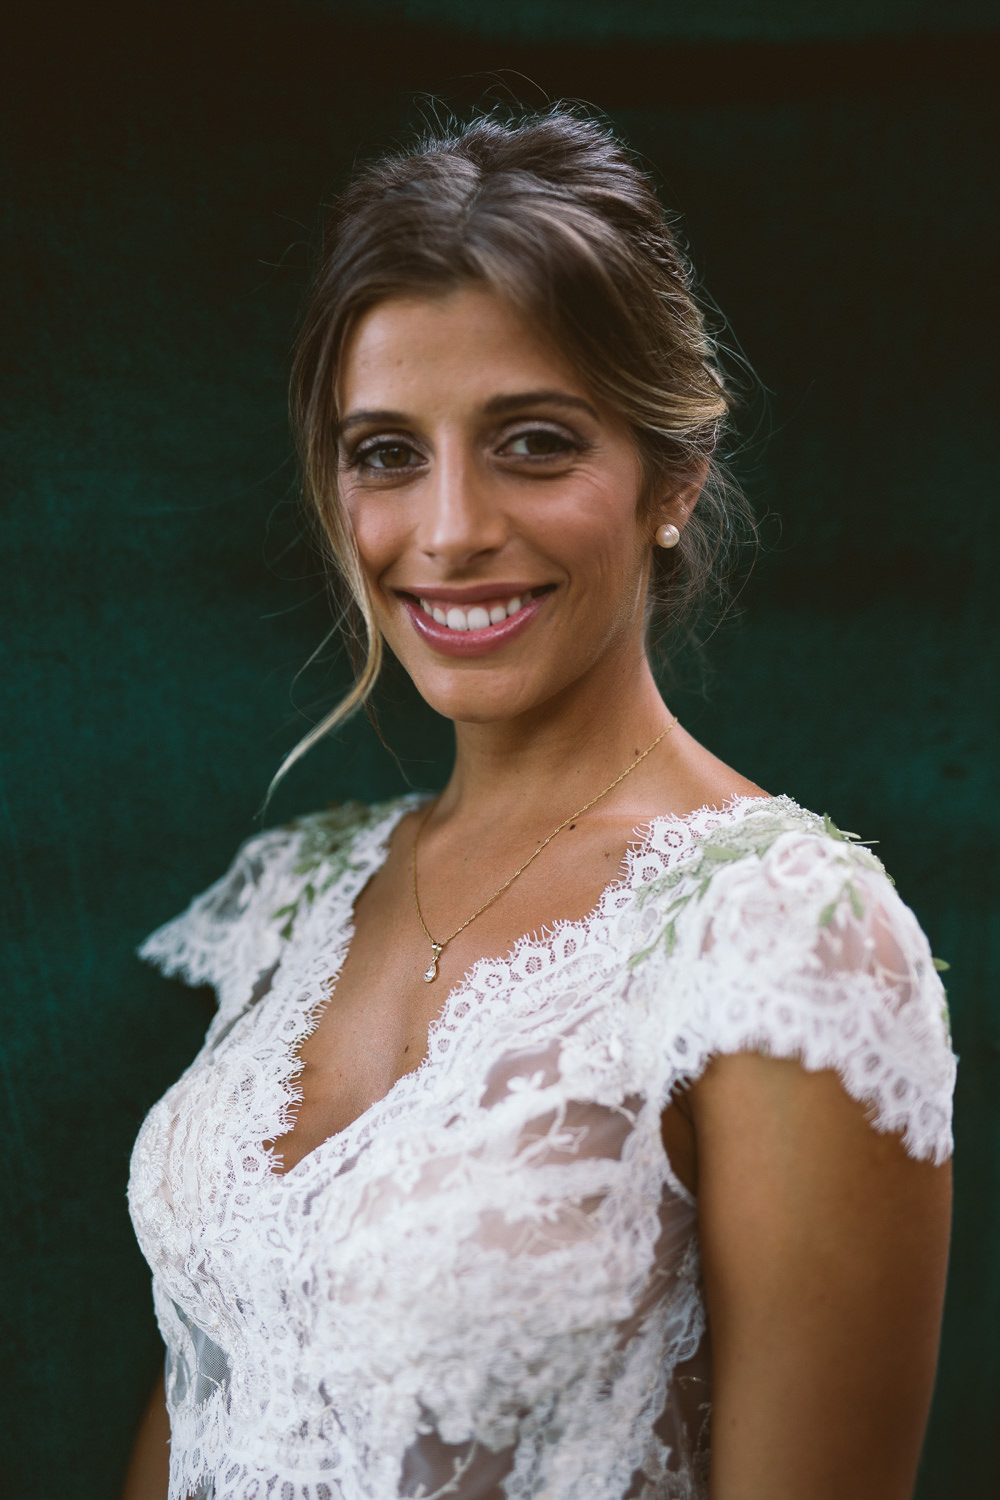 Bride Bridal Make Up Botanical Dark Green Velvet Pampas Grass Wedding Ideas Bárbara Araújo Photography